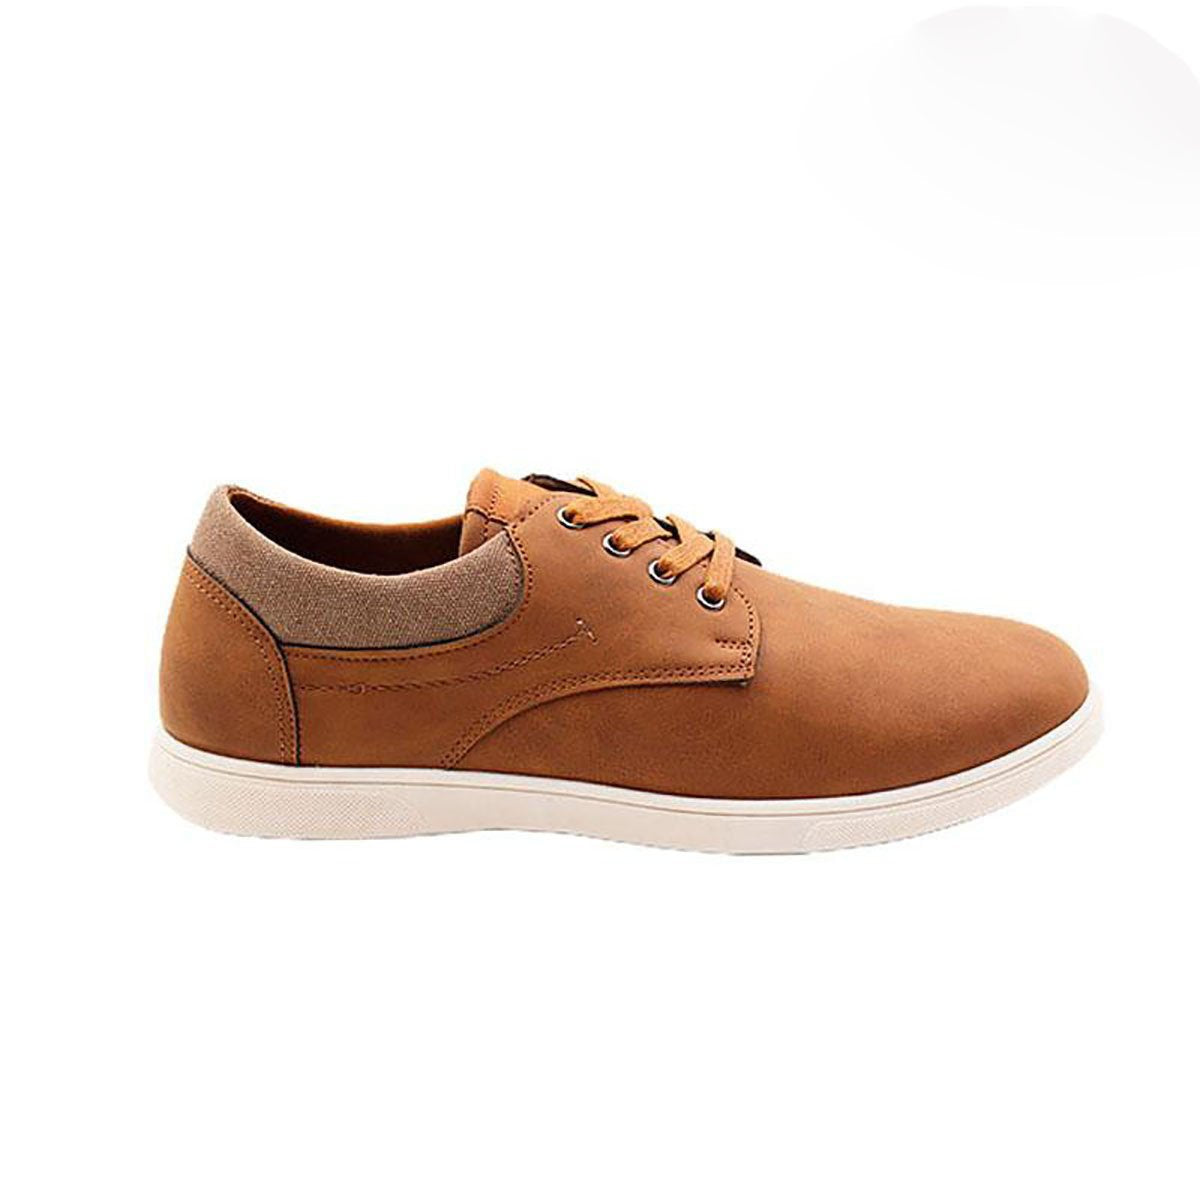 ZAPATO CASUAL ANDRESS501 - TAN